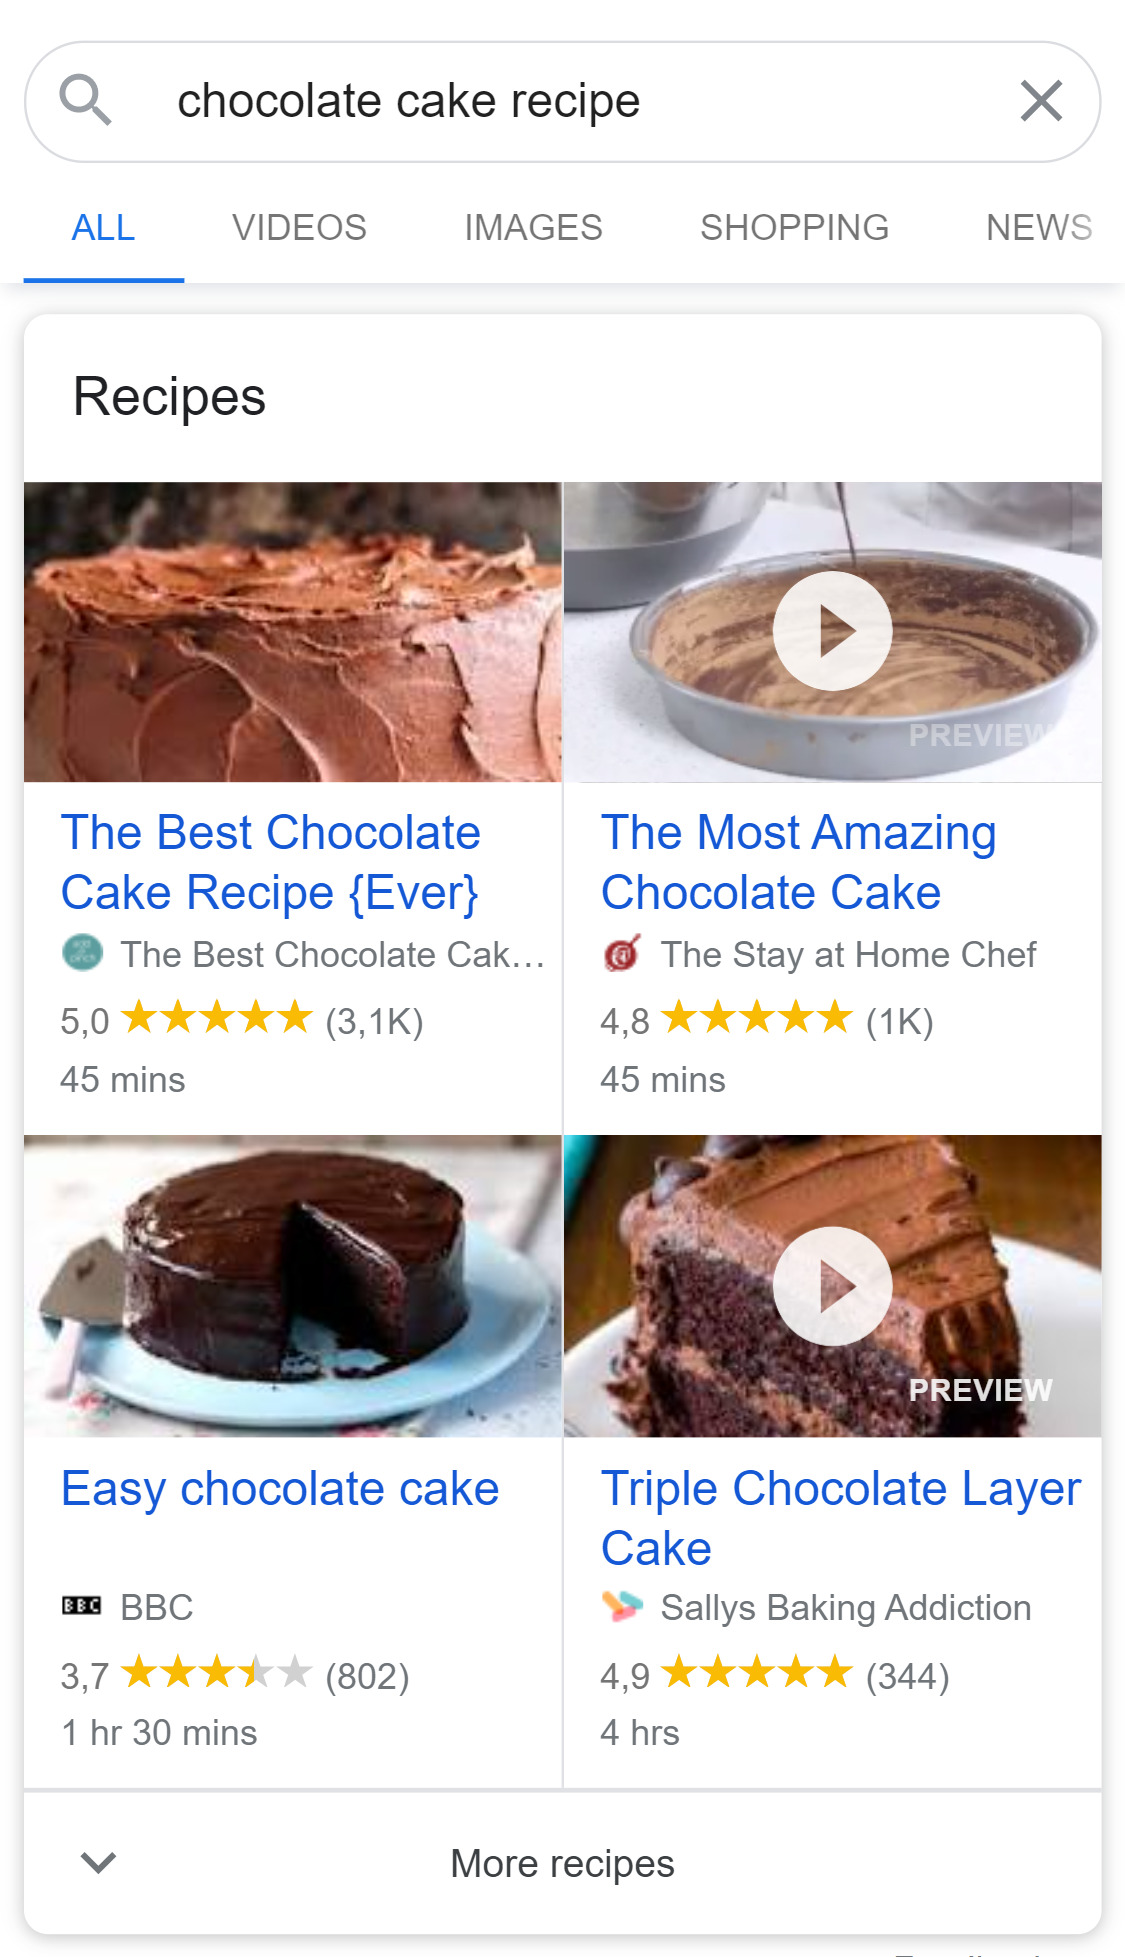 Recipe results in Google search results.